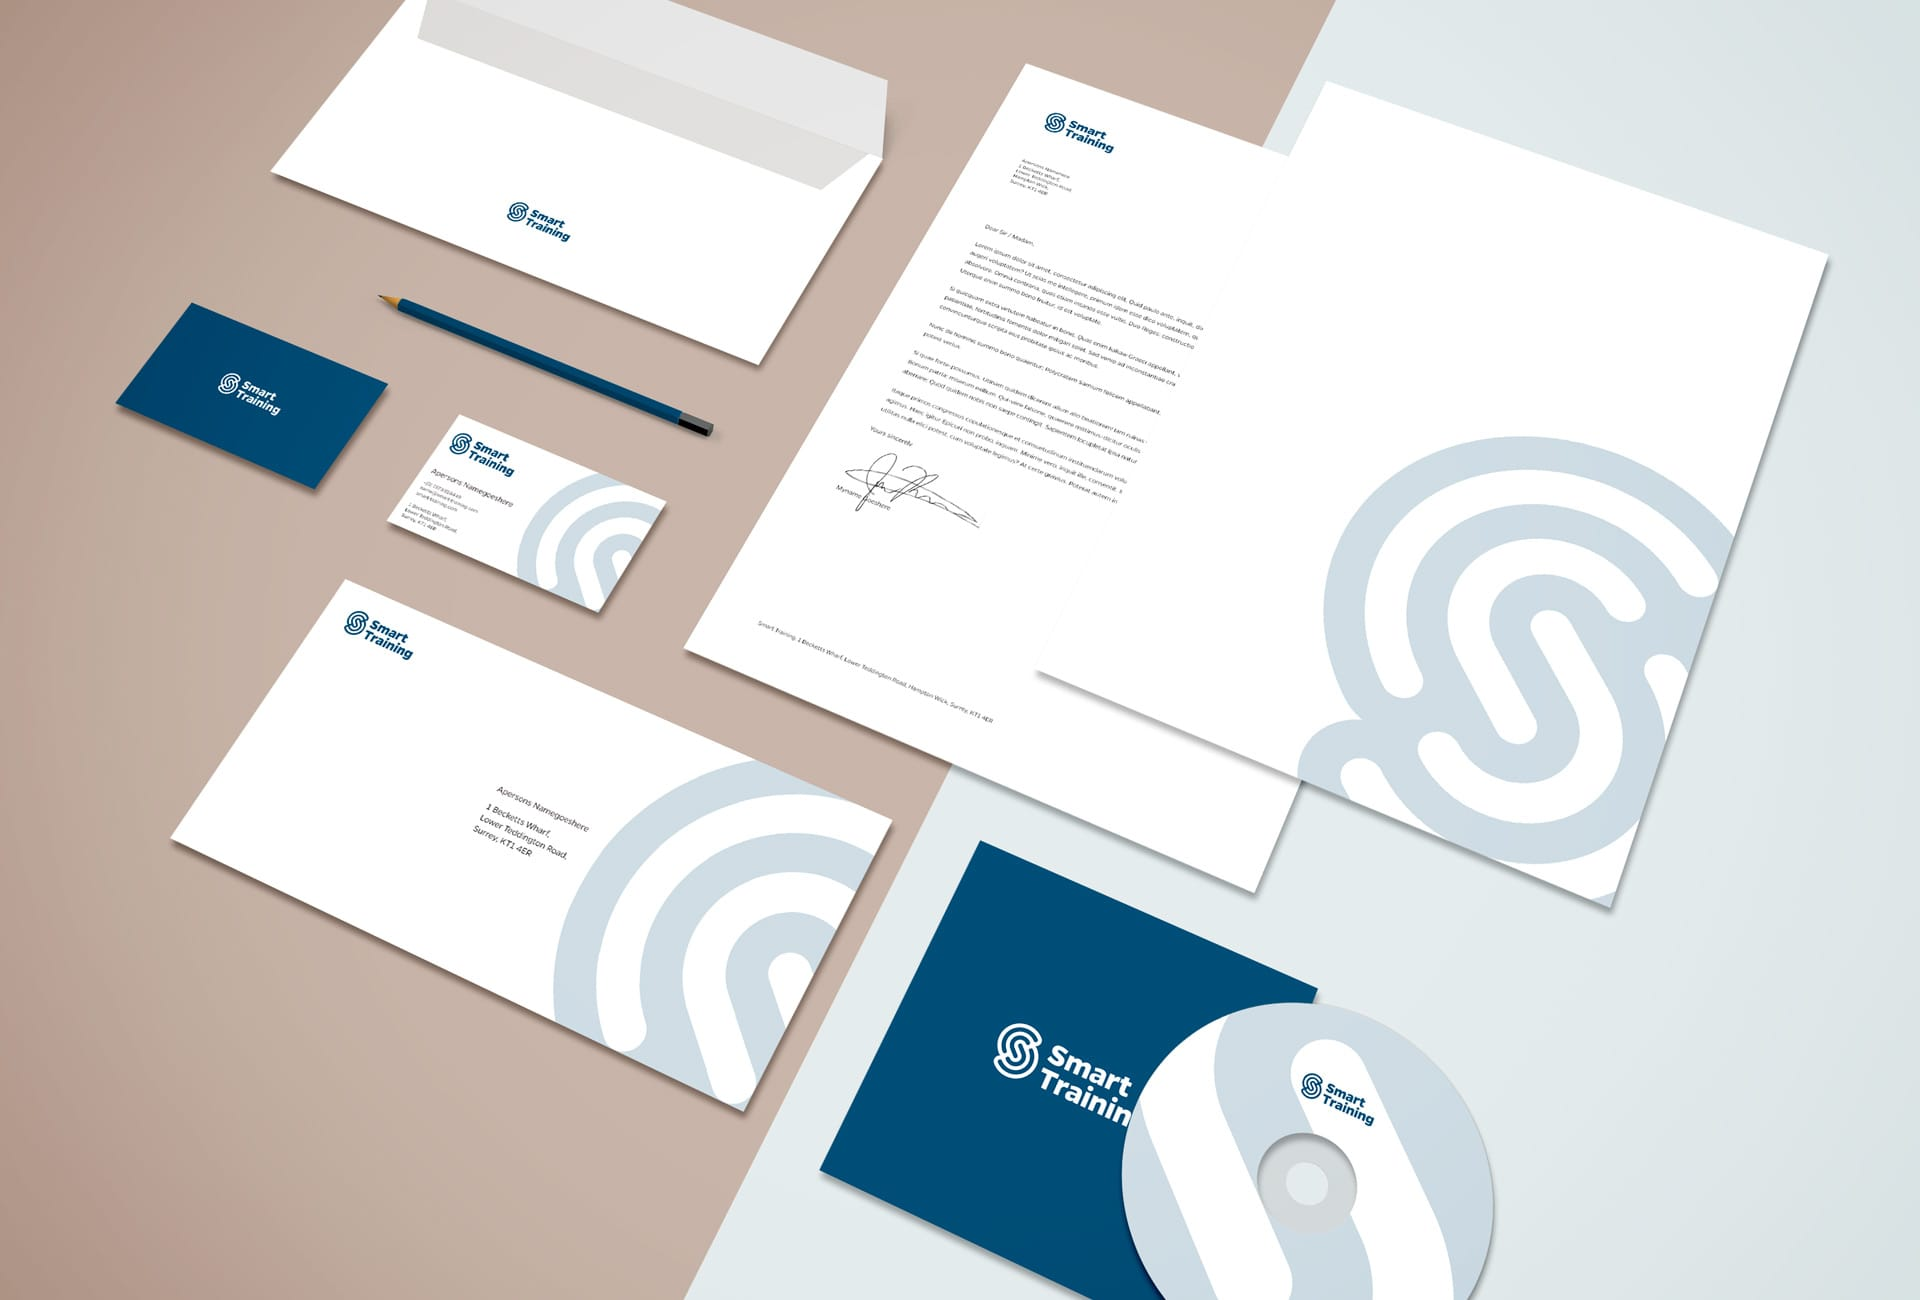 Smart Training: Branding & Website - Stationery